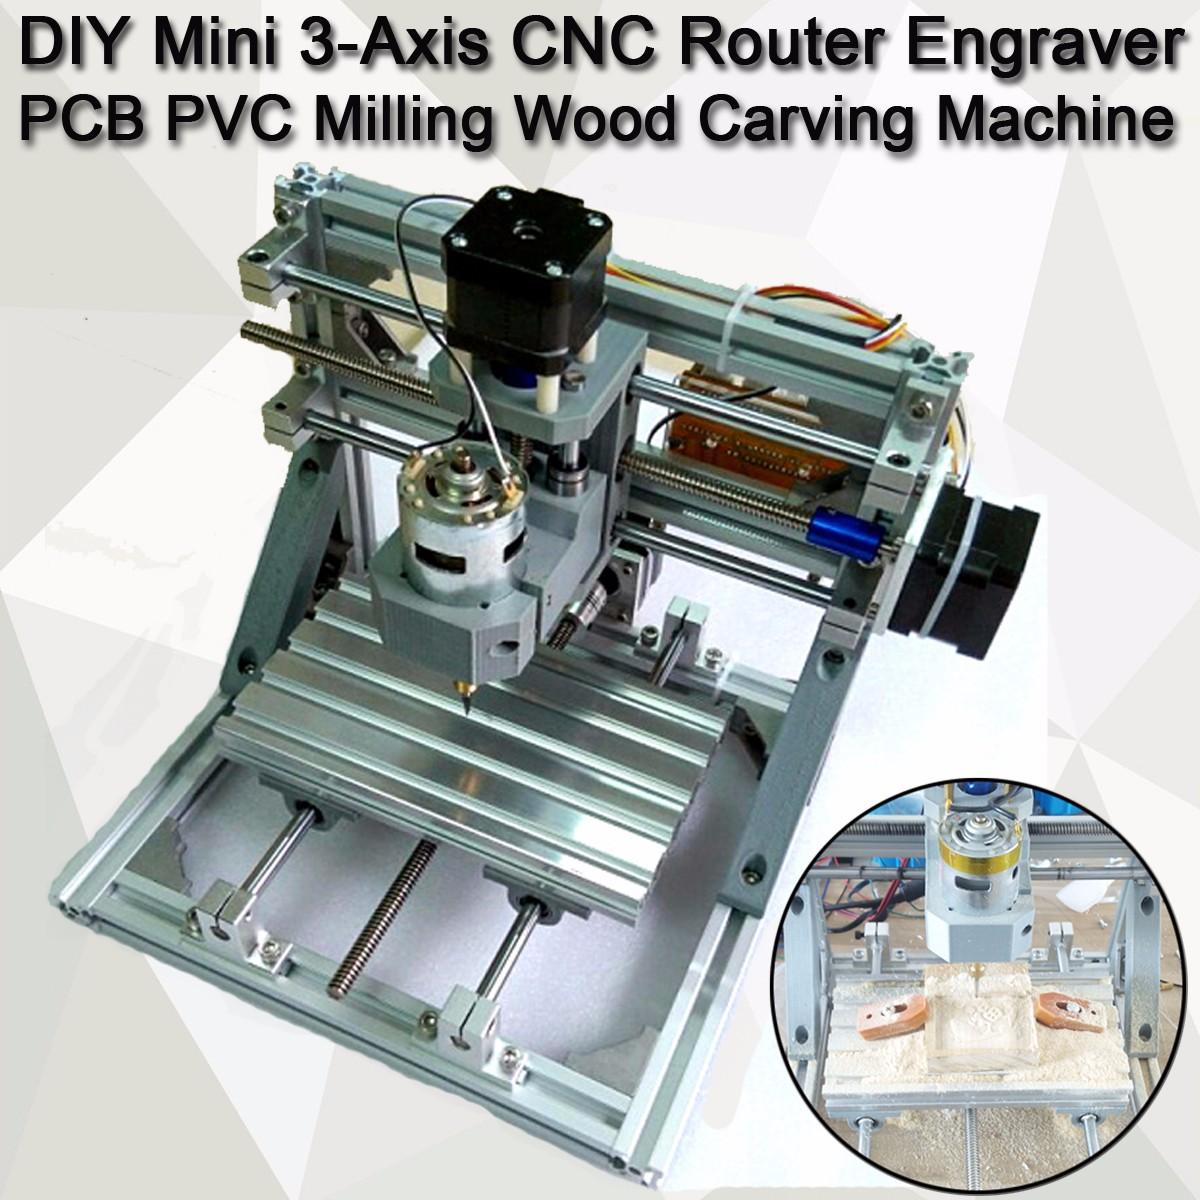 Diy Mini 3 Axis Router Cnc 1610 Grbl Control Cnc Machine Engraver Pcb Pvc Milling Wood Carving Machine Working Area 16x10 5x3cm